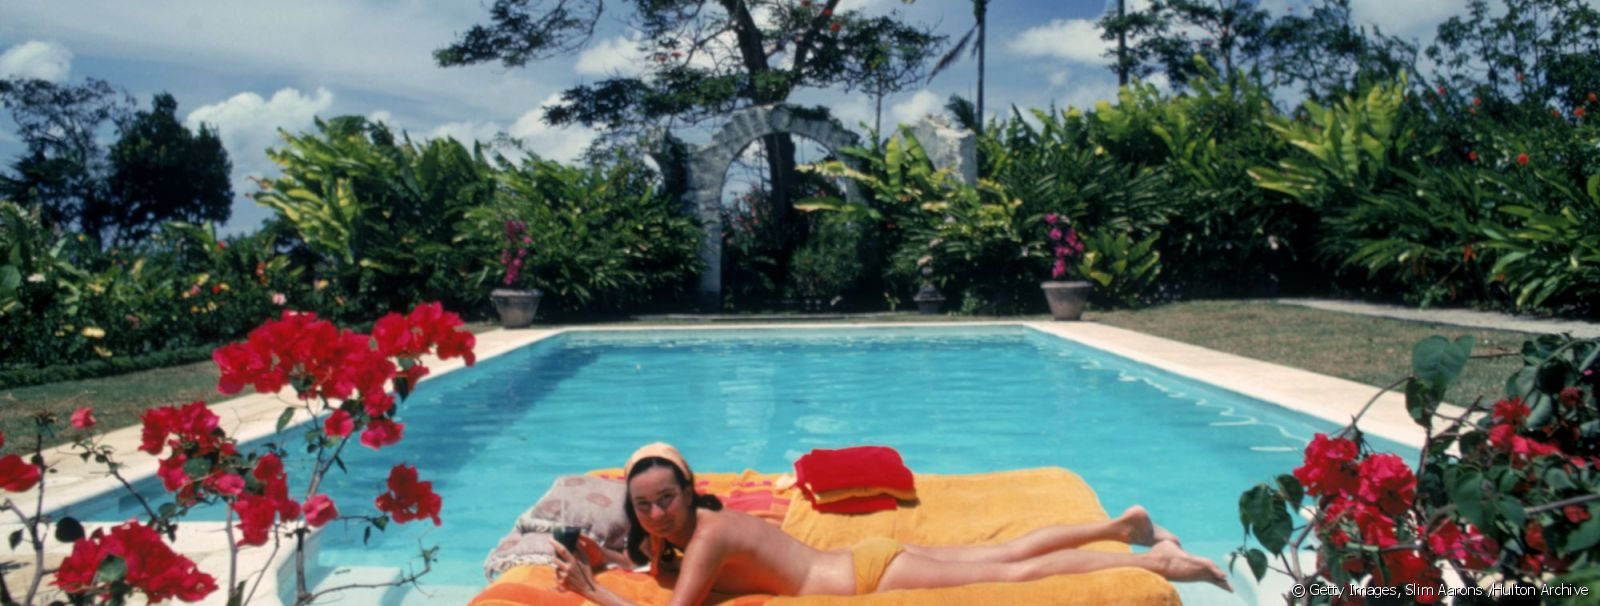 The former Pauline Haywood sunbathing on a lilo in a swimming pool designed by English artist Oliver Messel, Barbados, April 1976. Her family owned Haywood's Plantation.